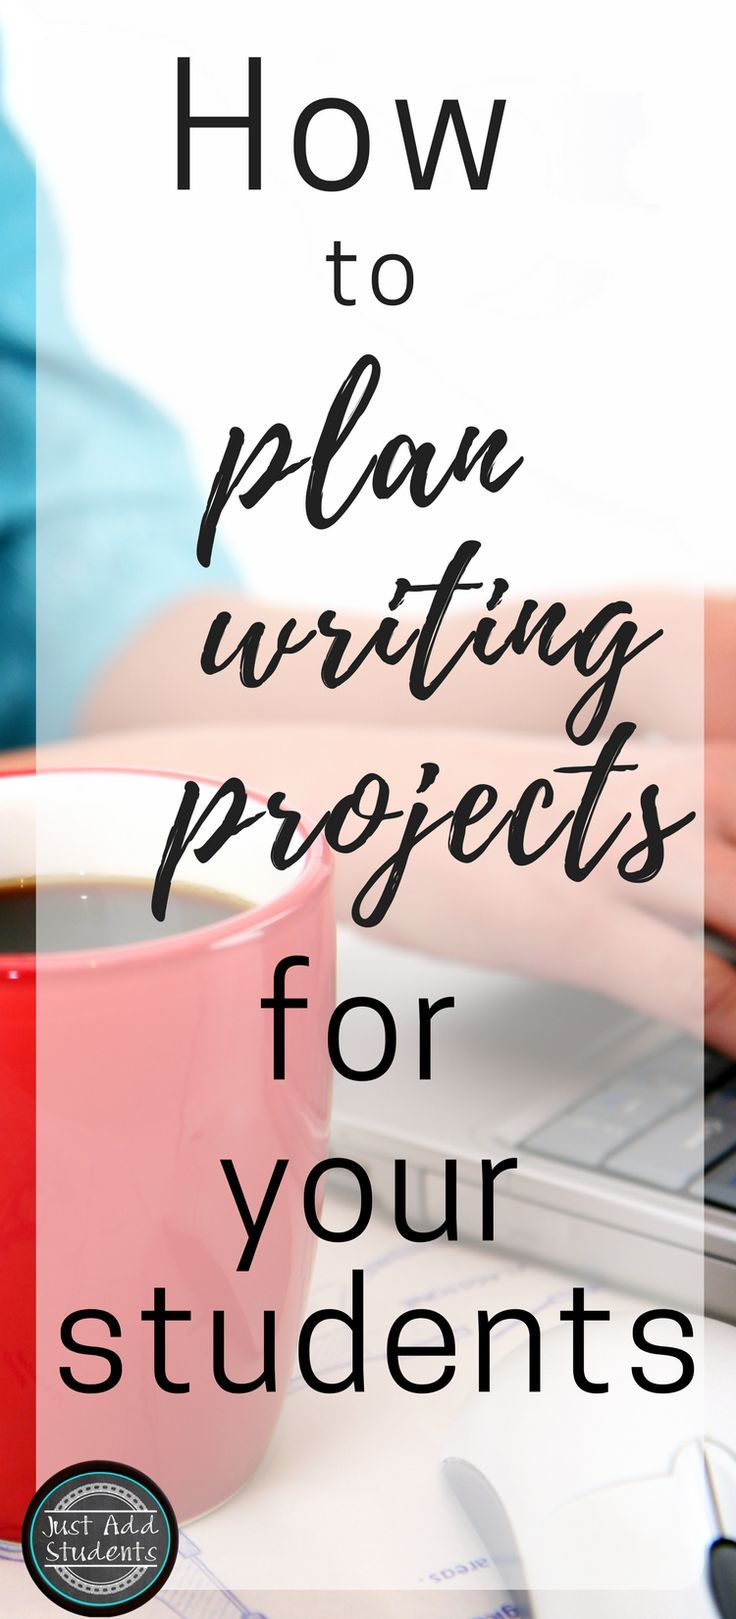 Create your own custom project sheets for your student writing projects that match your students' needs and interests.  Quick tips and steps to create writing assignments that work for your students!  Includes a free conversion chart for turning rubrics into percentage scores. #writing #lesson #teaching